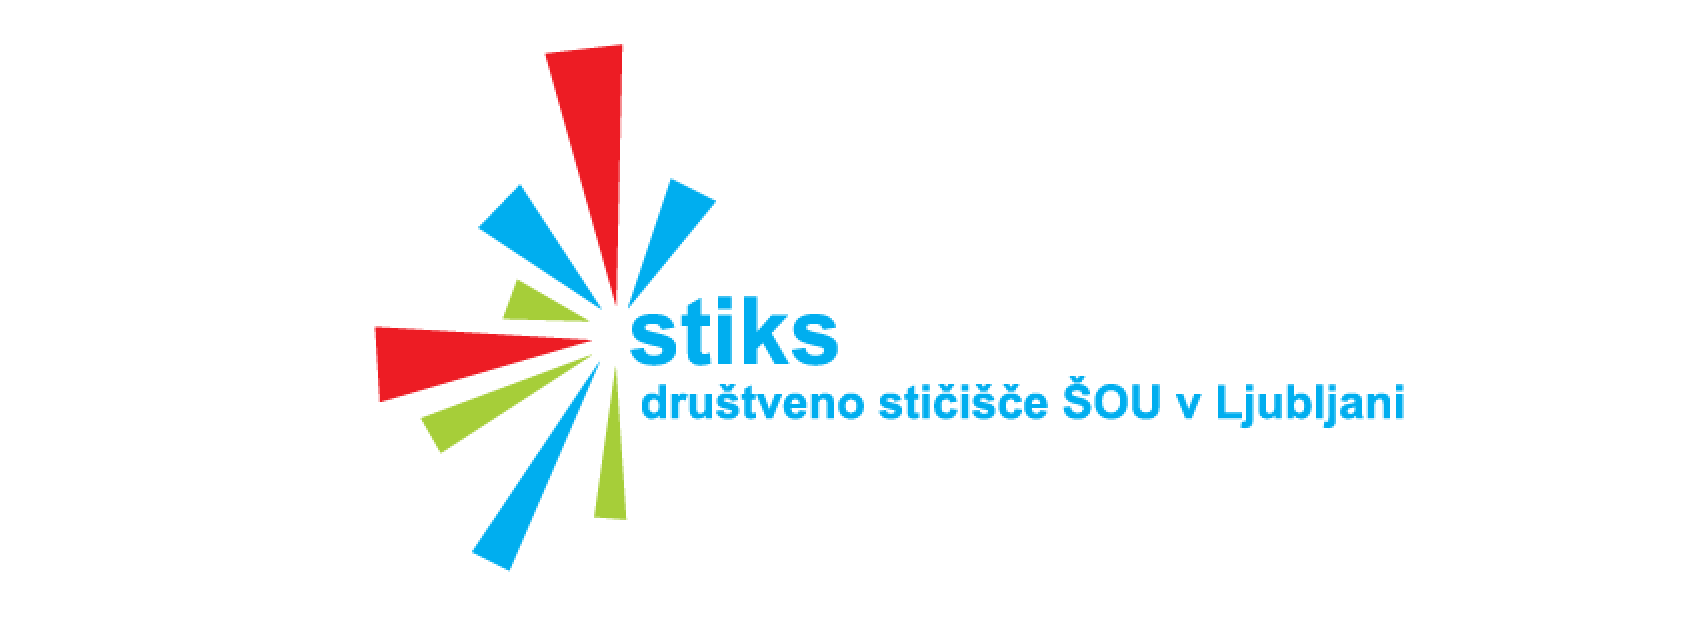 stiks-cover_3.png